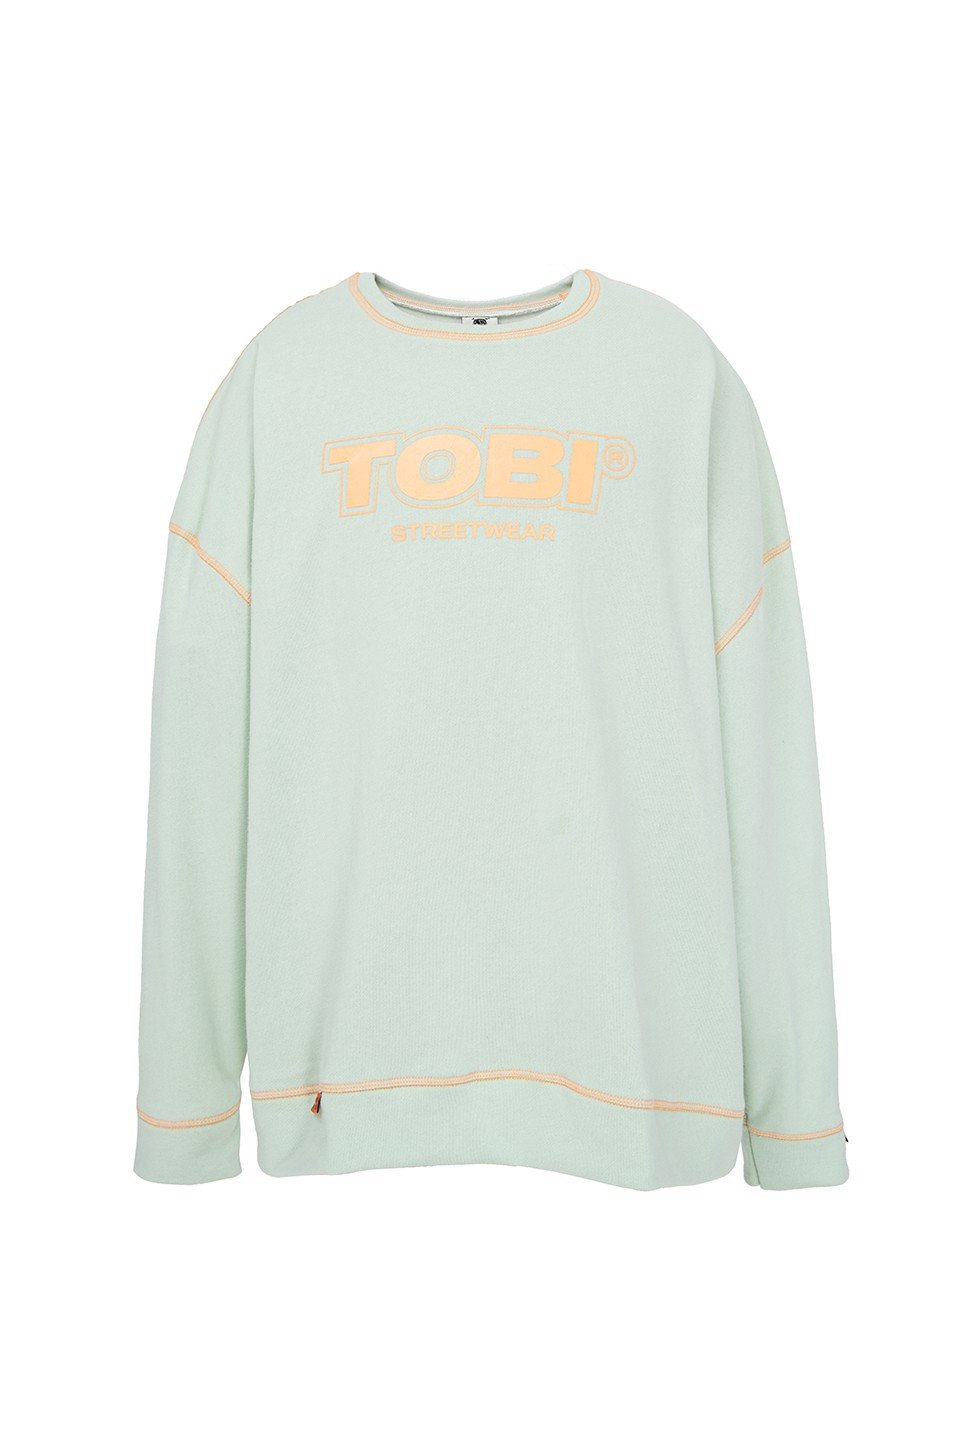 Sweater Outline Mint